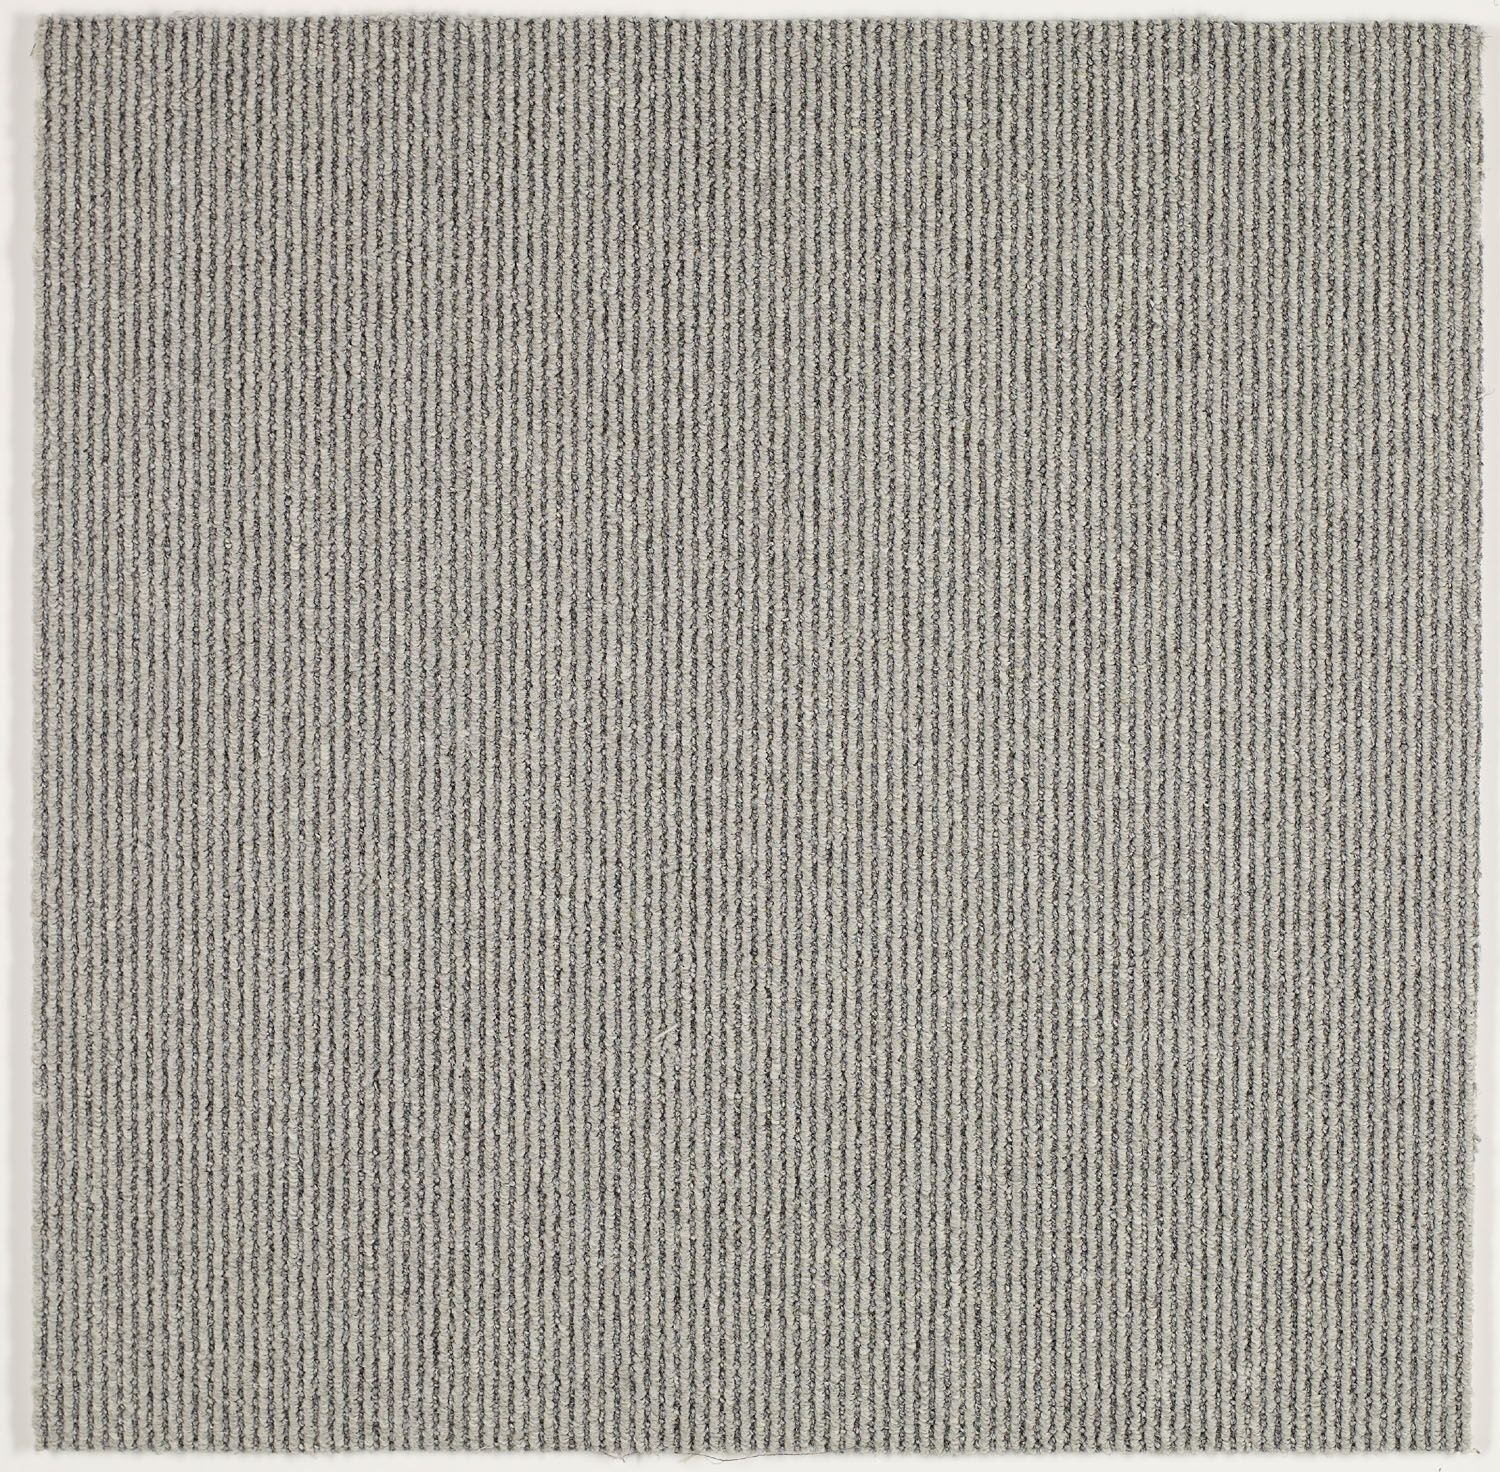 Burgher Platinum Sisal Machine Woven Indoor/Outdoor Area Rug Rug Size: Square 10'